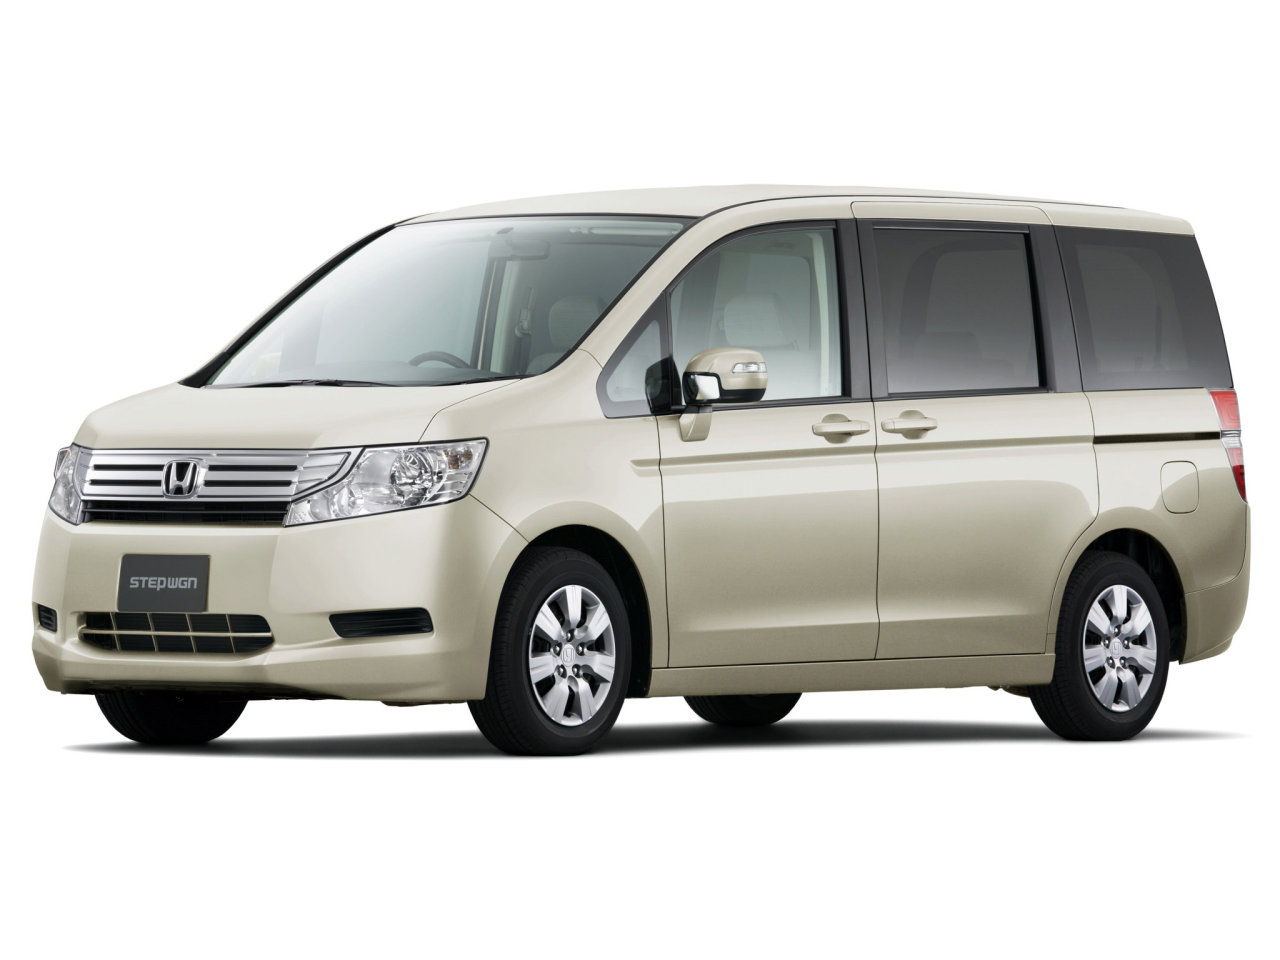 2005 Honda Stepwgn (rf) – pictures, information and specs - Auto-Database.com